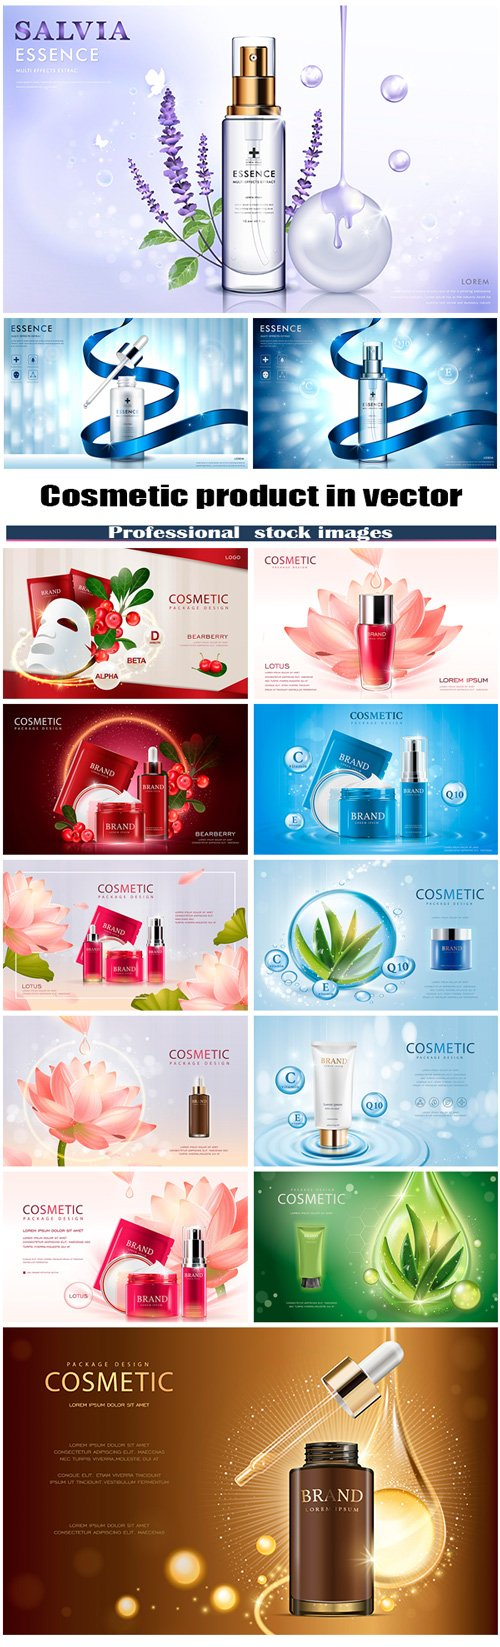 Cosmetic product in vector #2